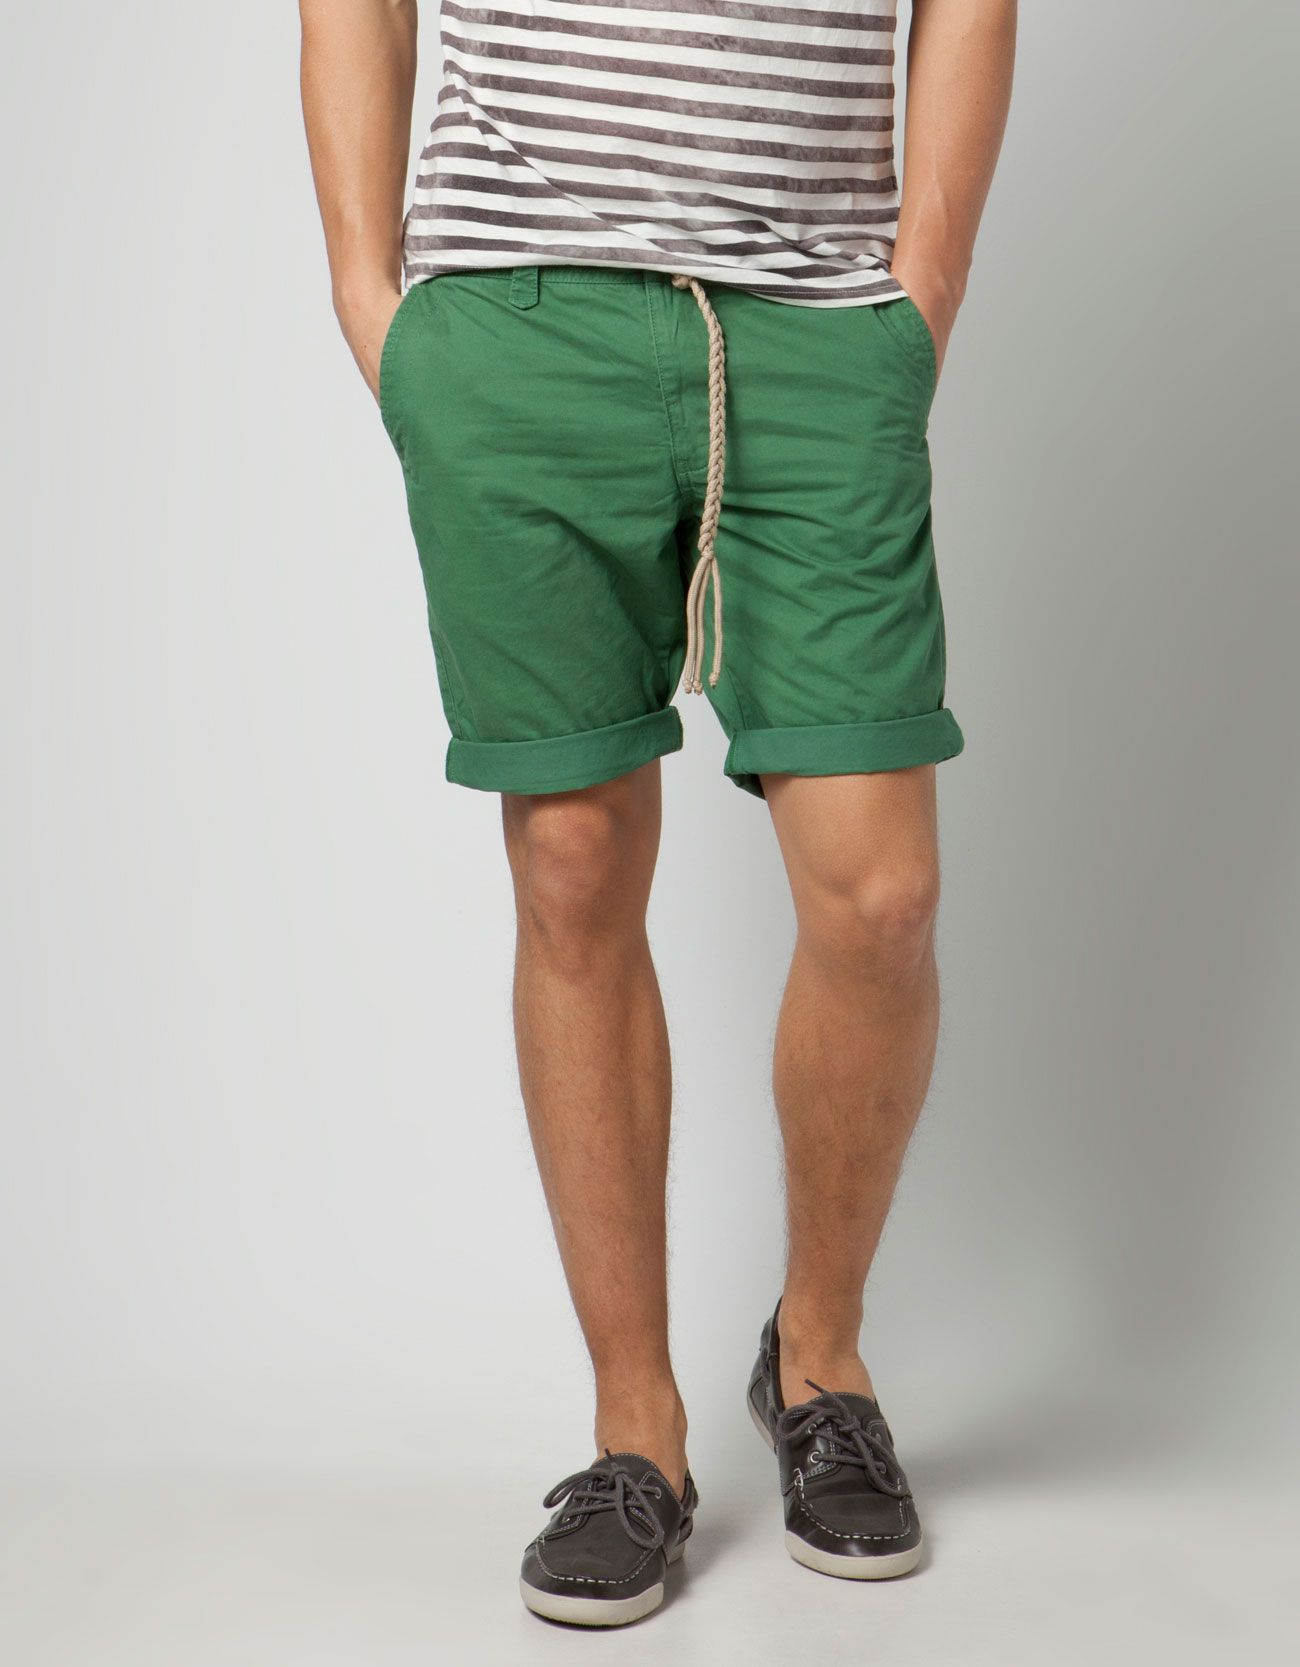 5fbb58beef Green Bermudas with cord belt from Bershka. Cute! | The Fashion Side ...